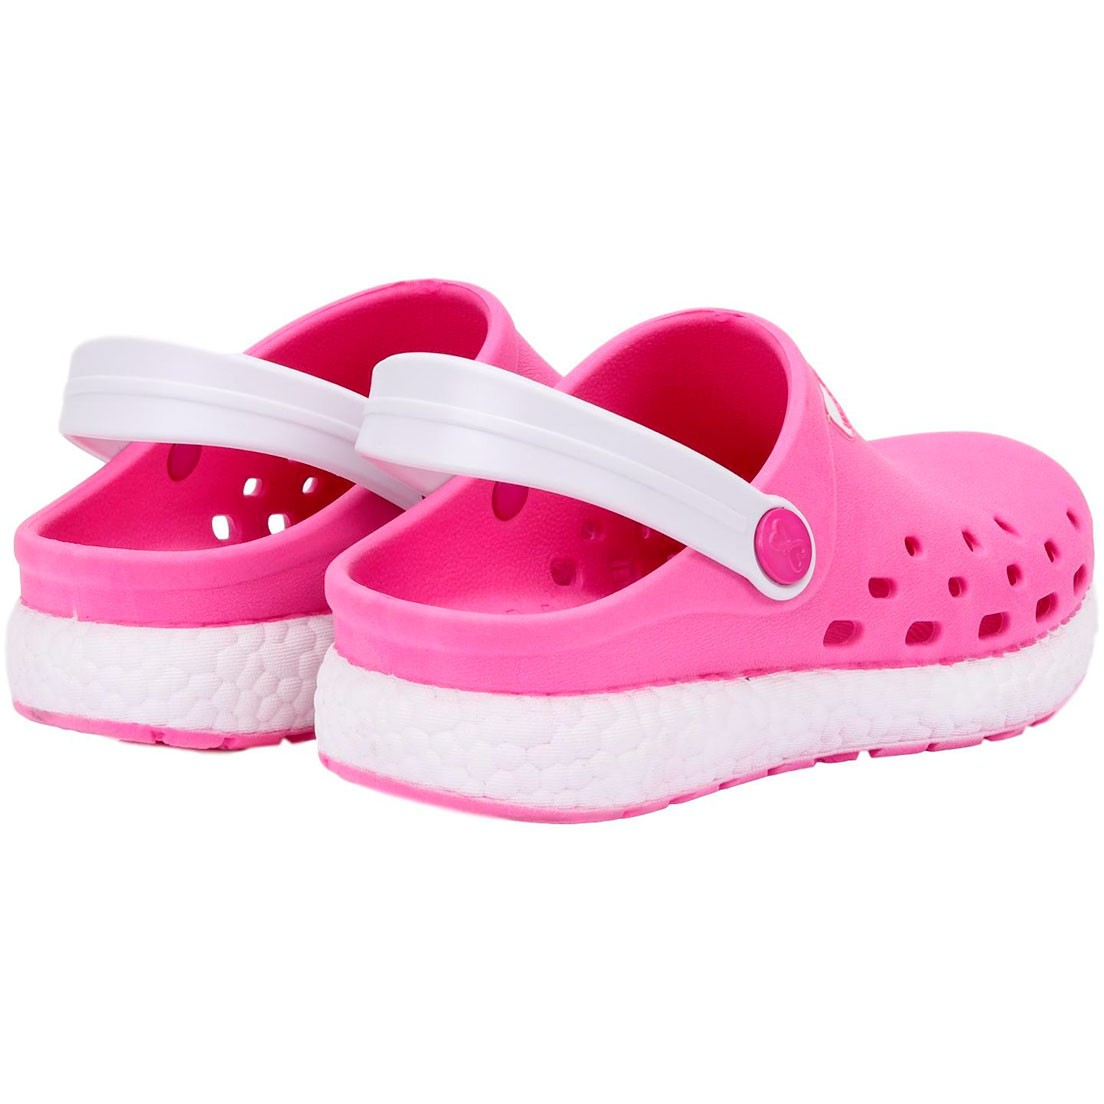 Babuche World Colors Pink/Branco Feminino 130.0021507